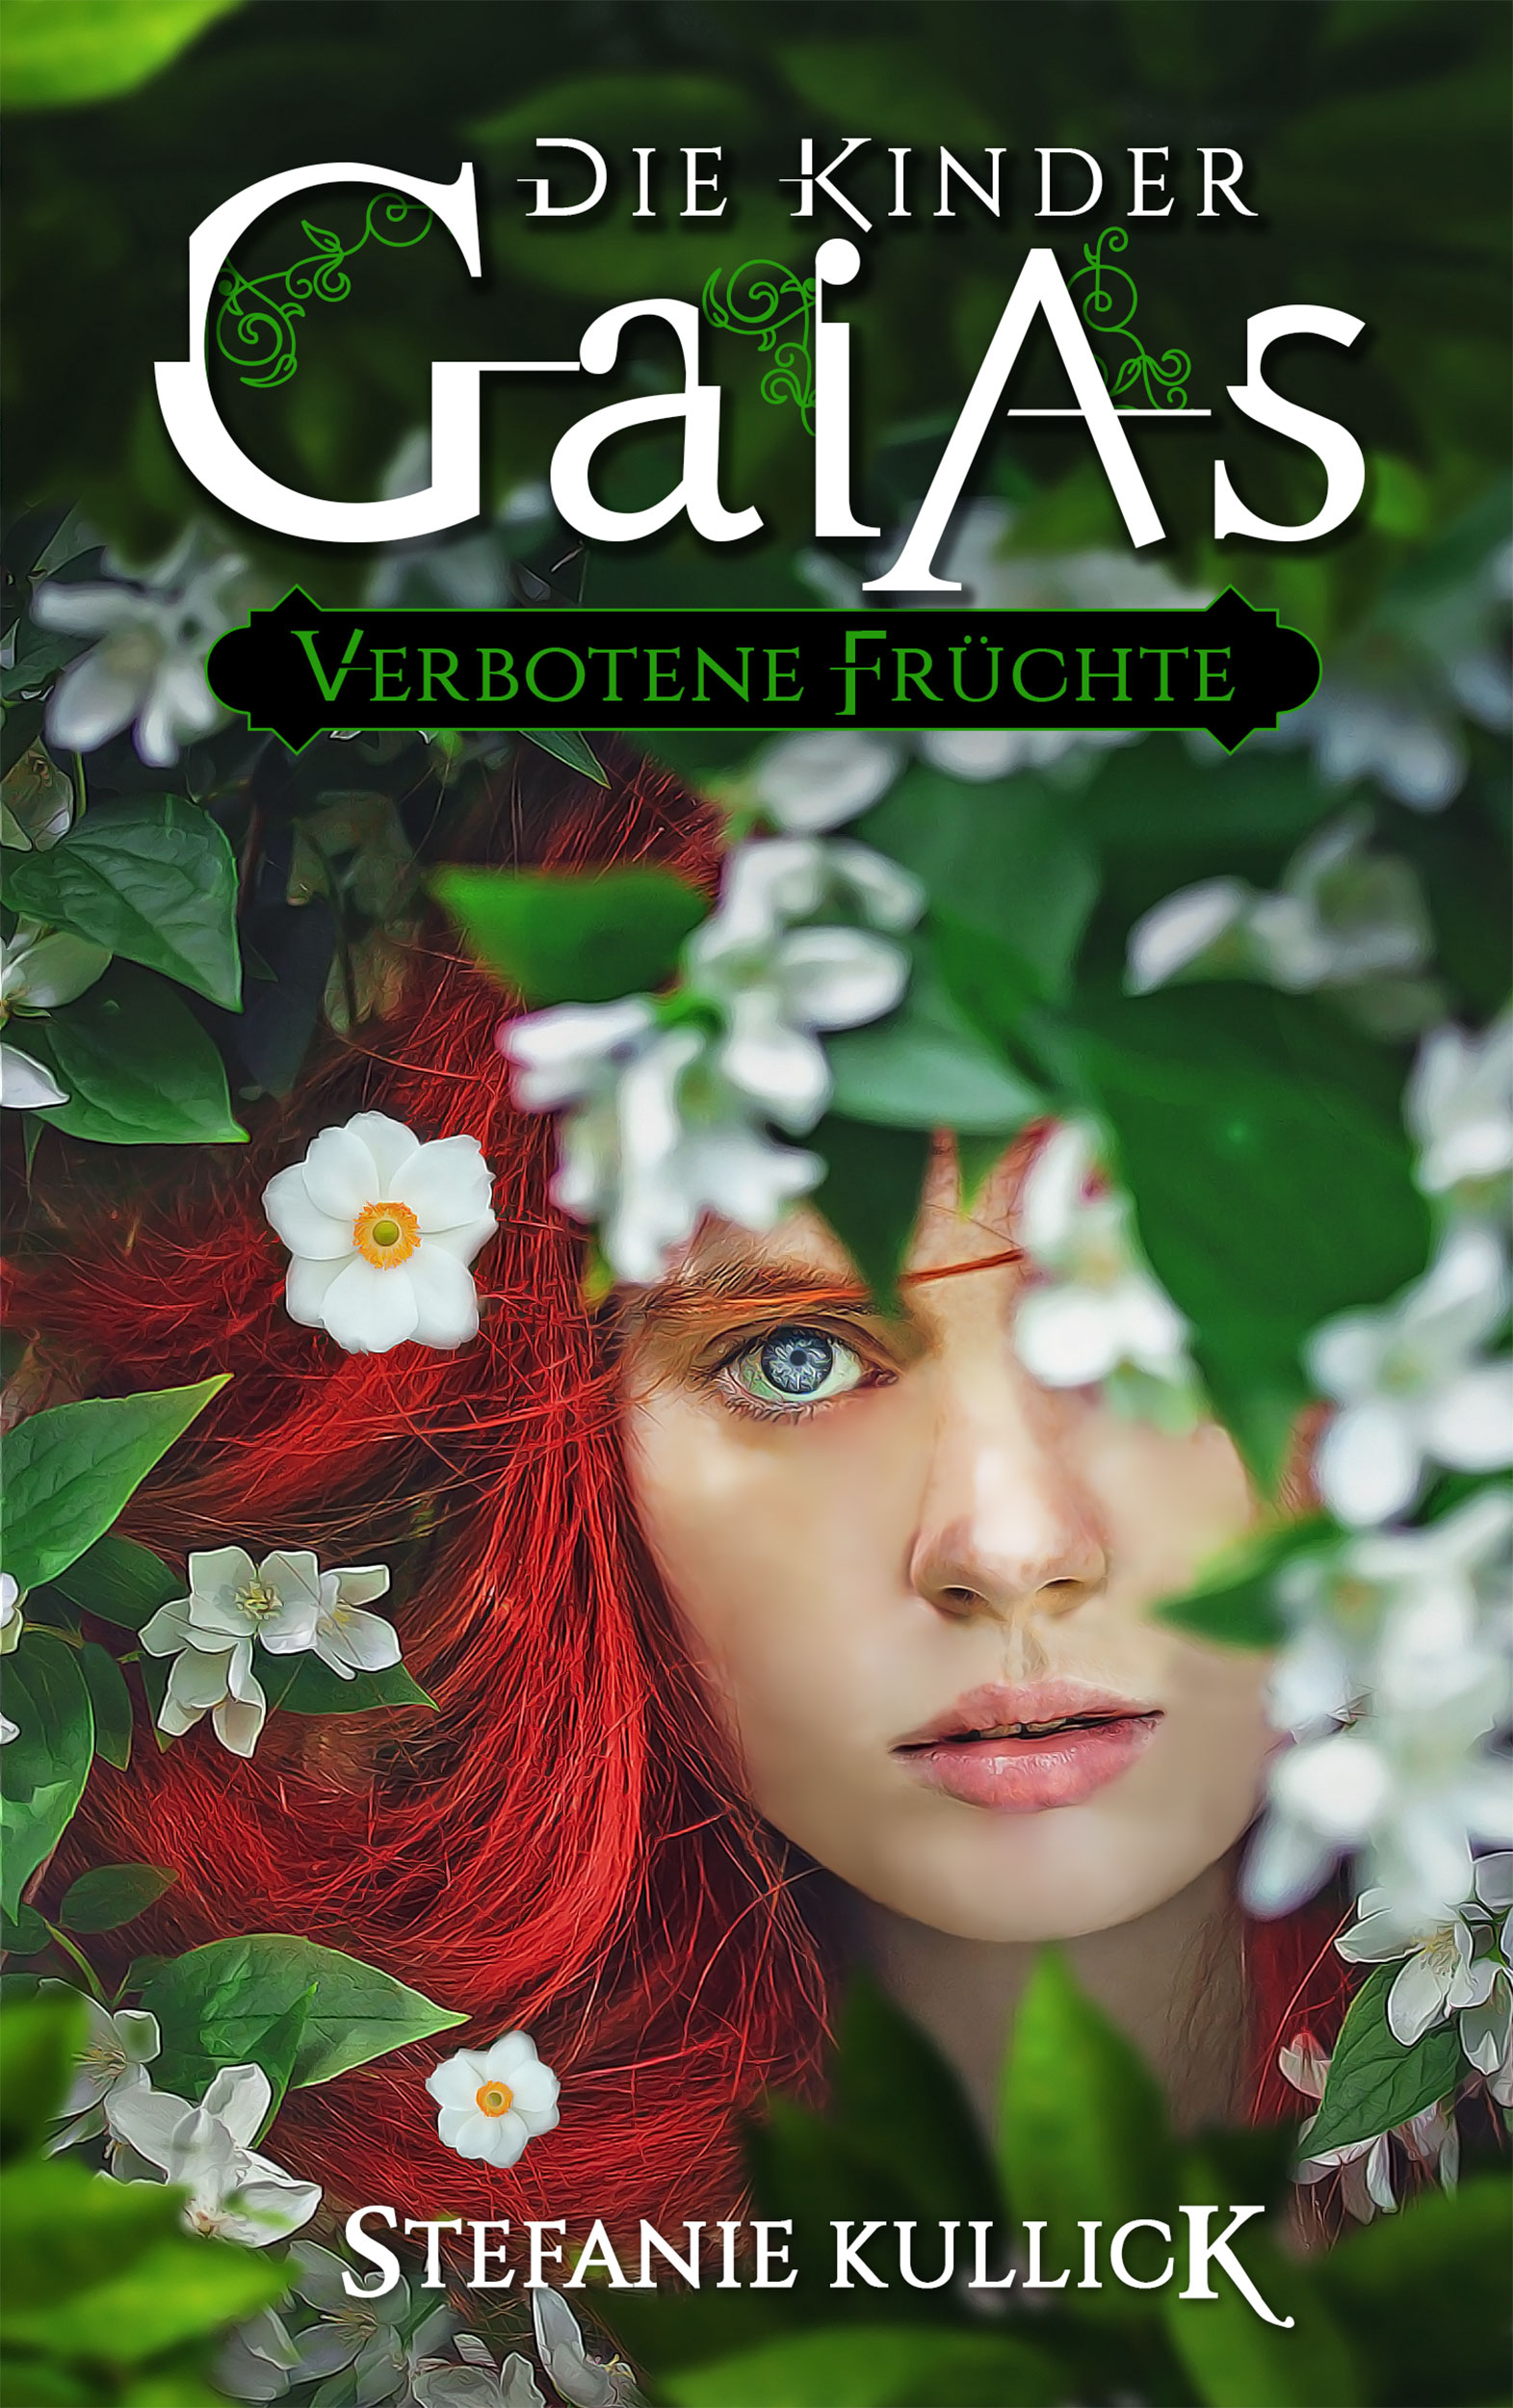 Die-Kinder-Gaias-Verbotene-fruchte-EBOOK